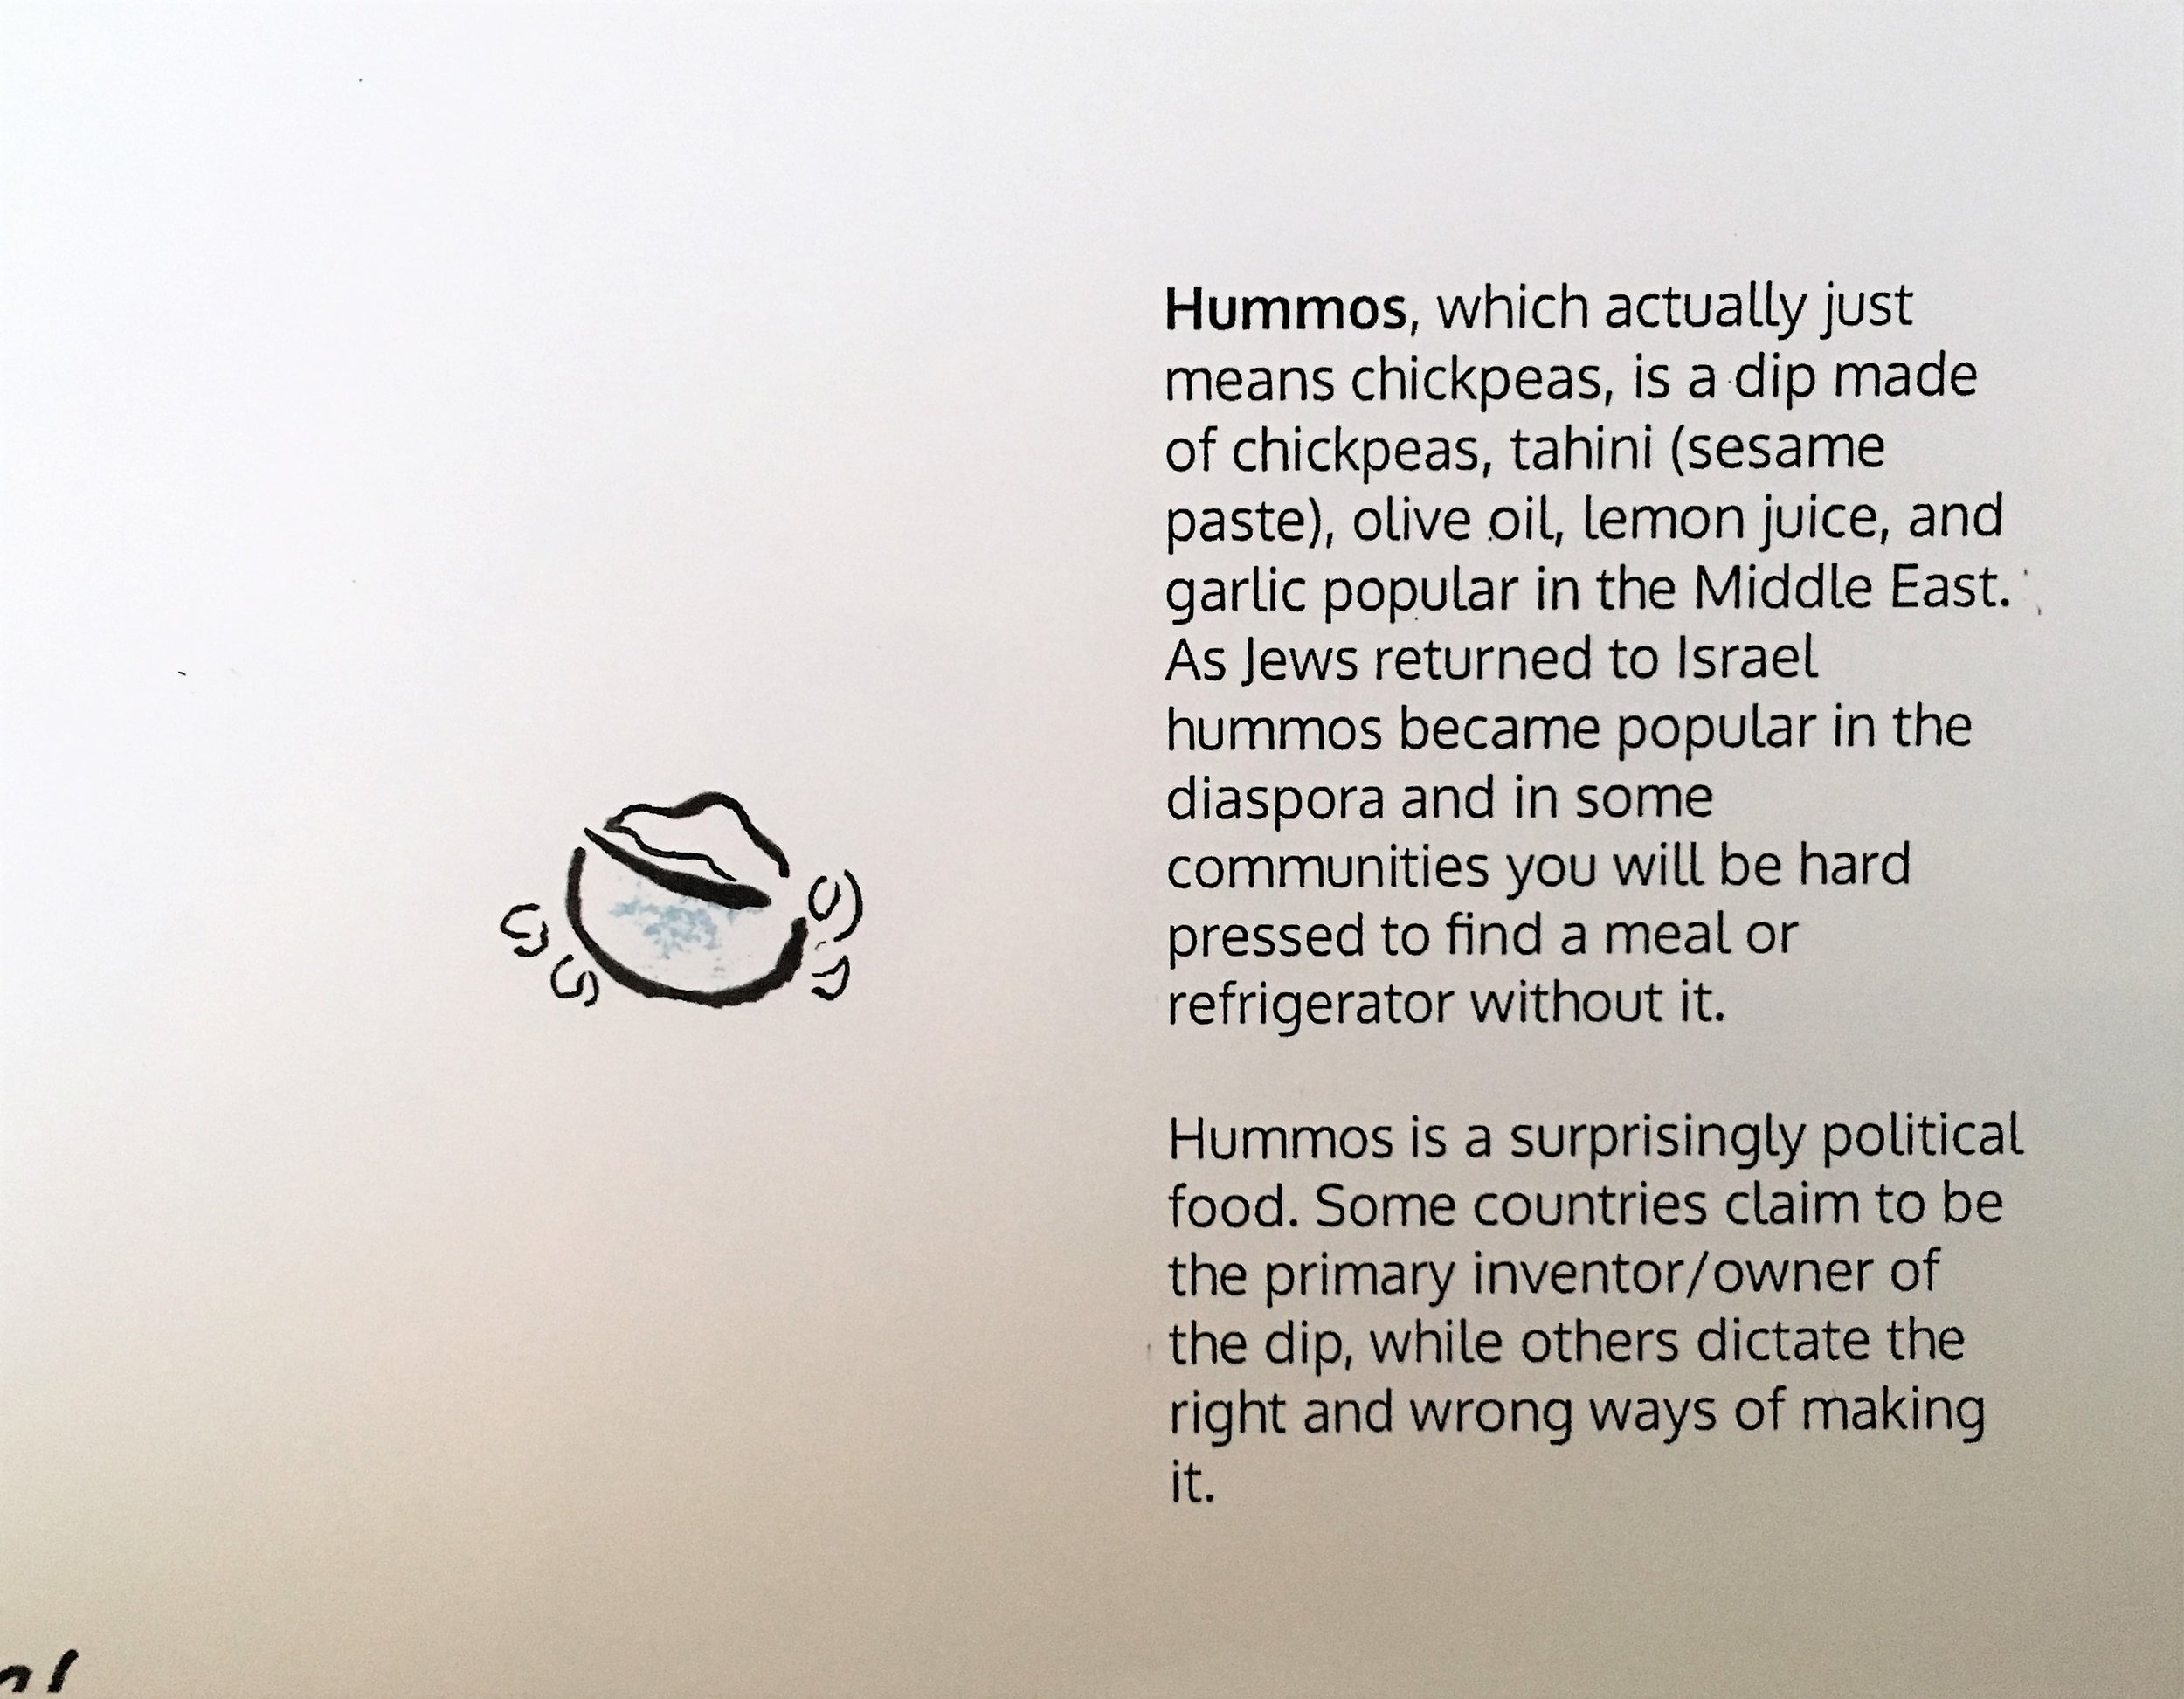 Hummos, inside image